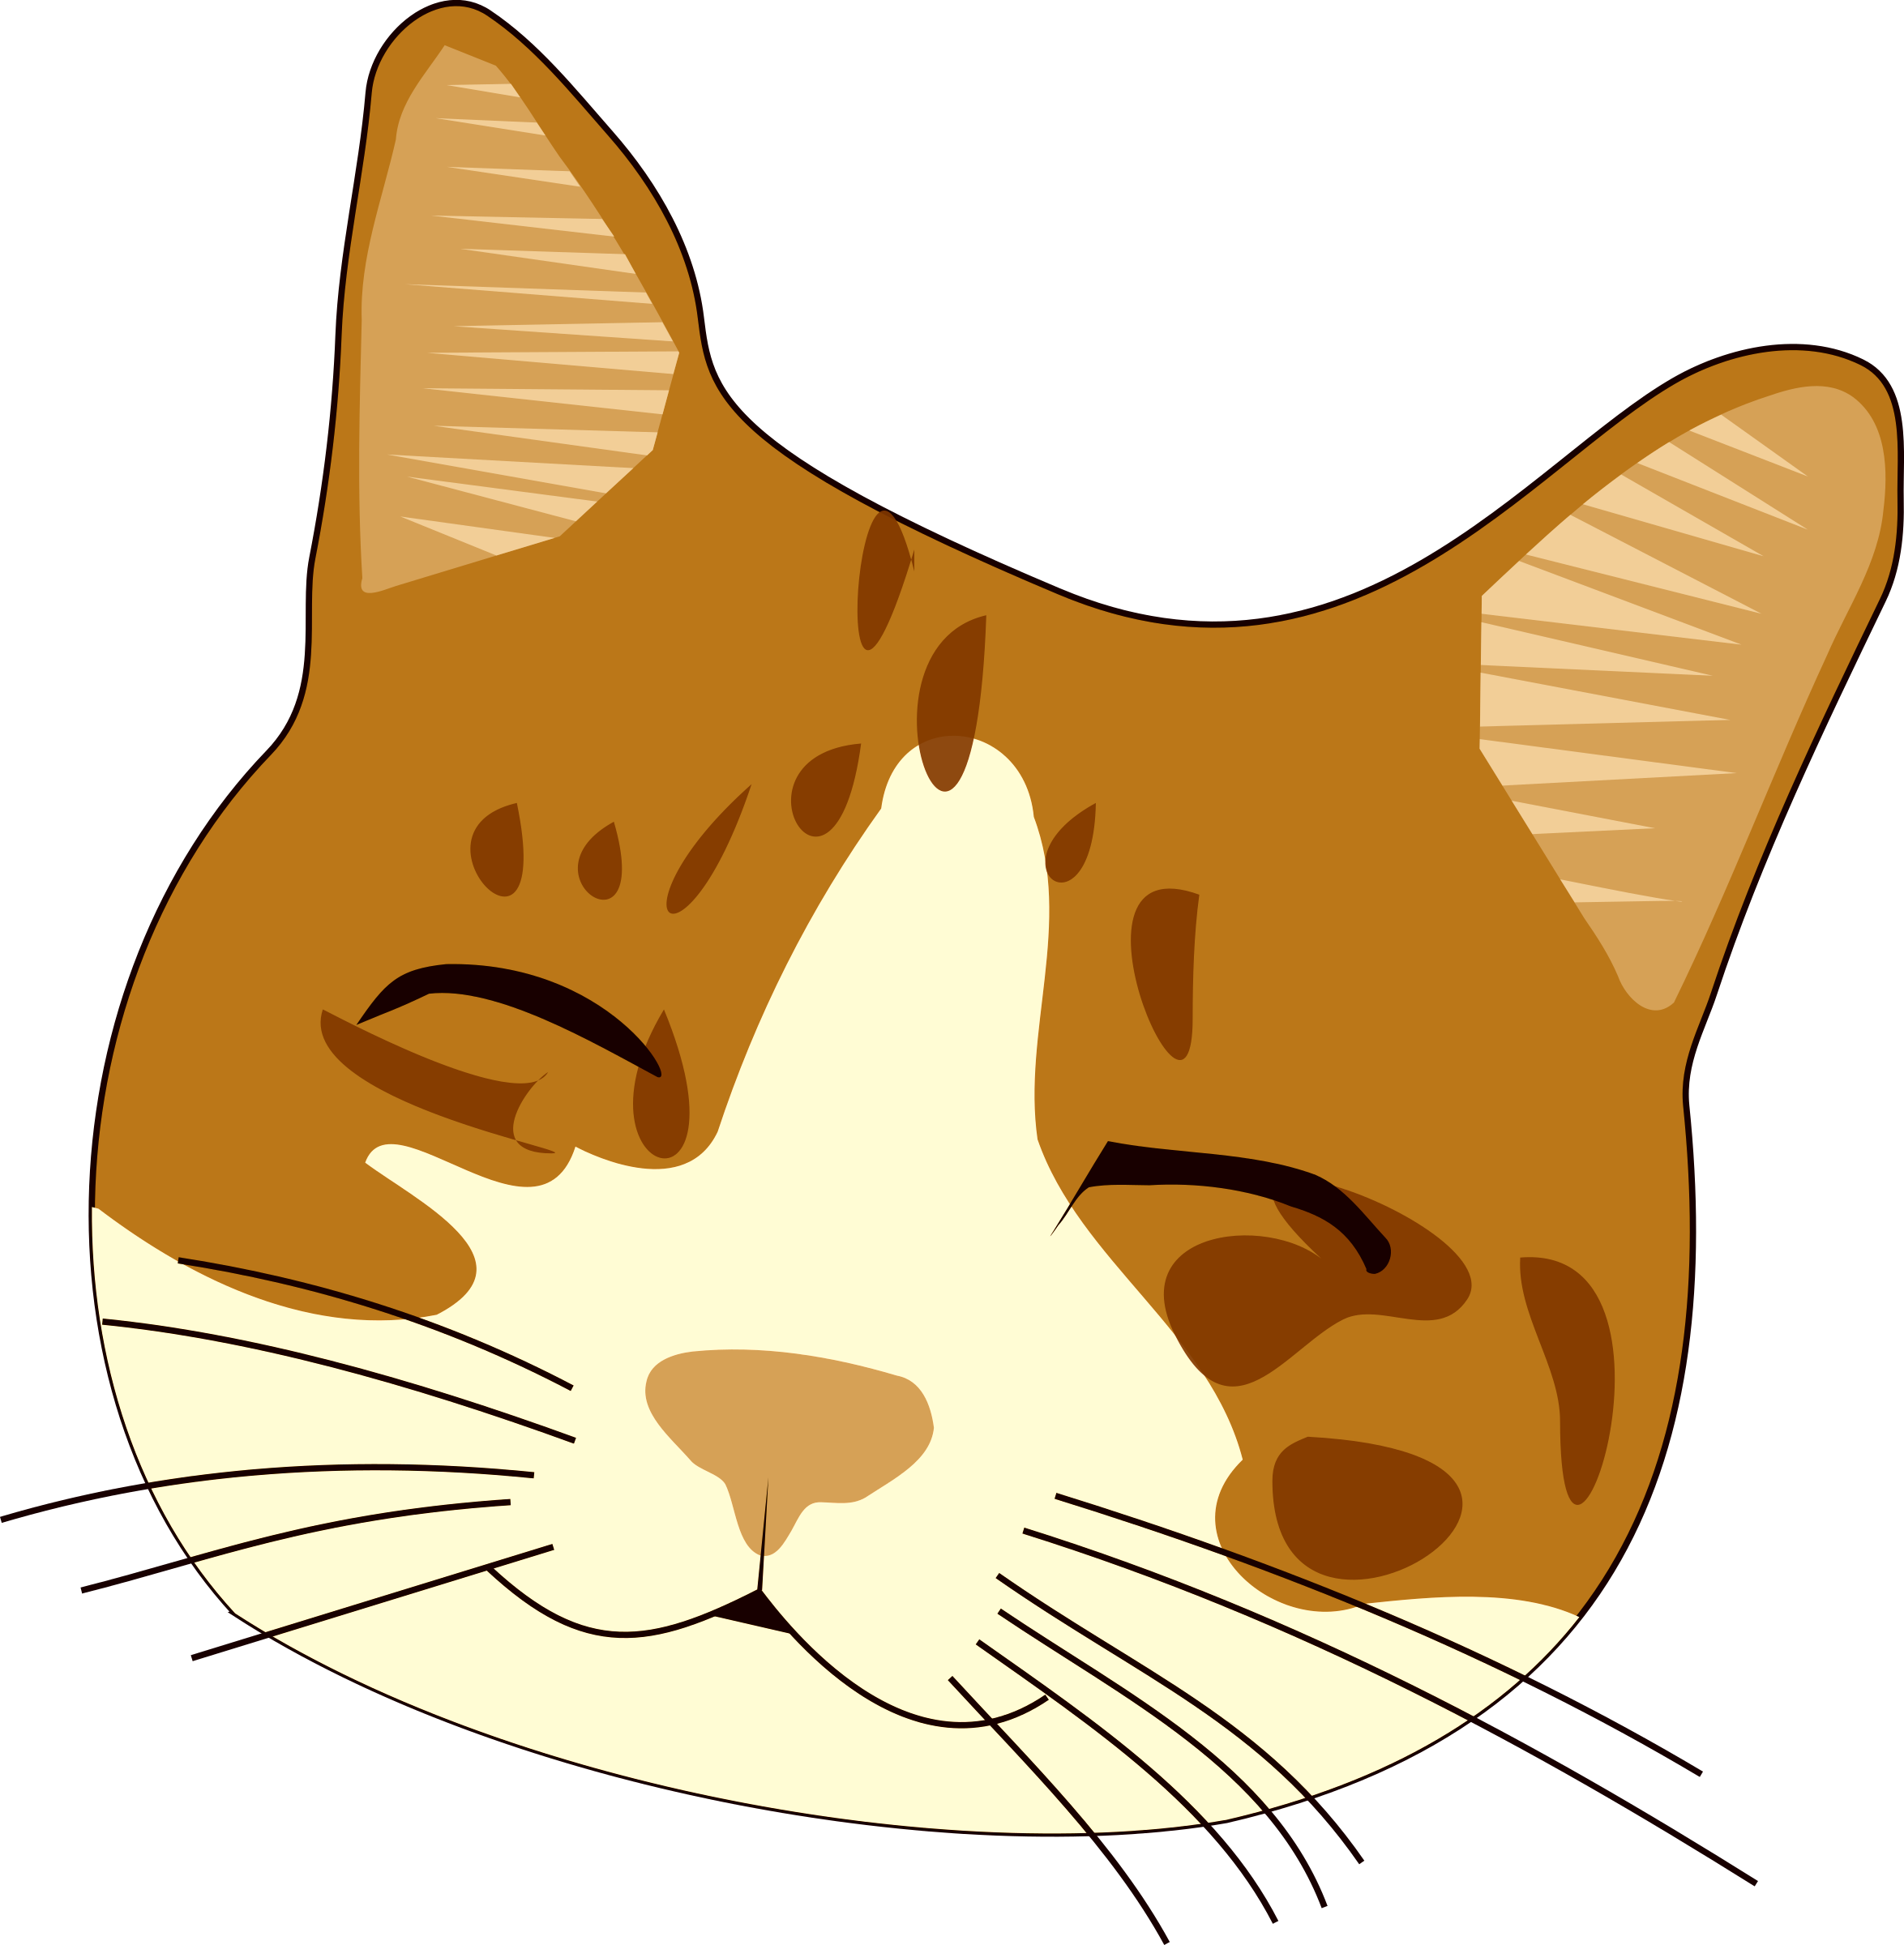 Image id png photo. Hands clipart cat